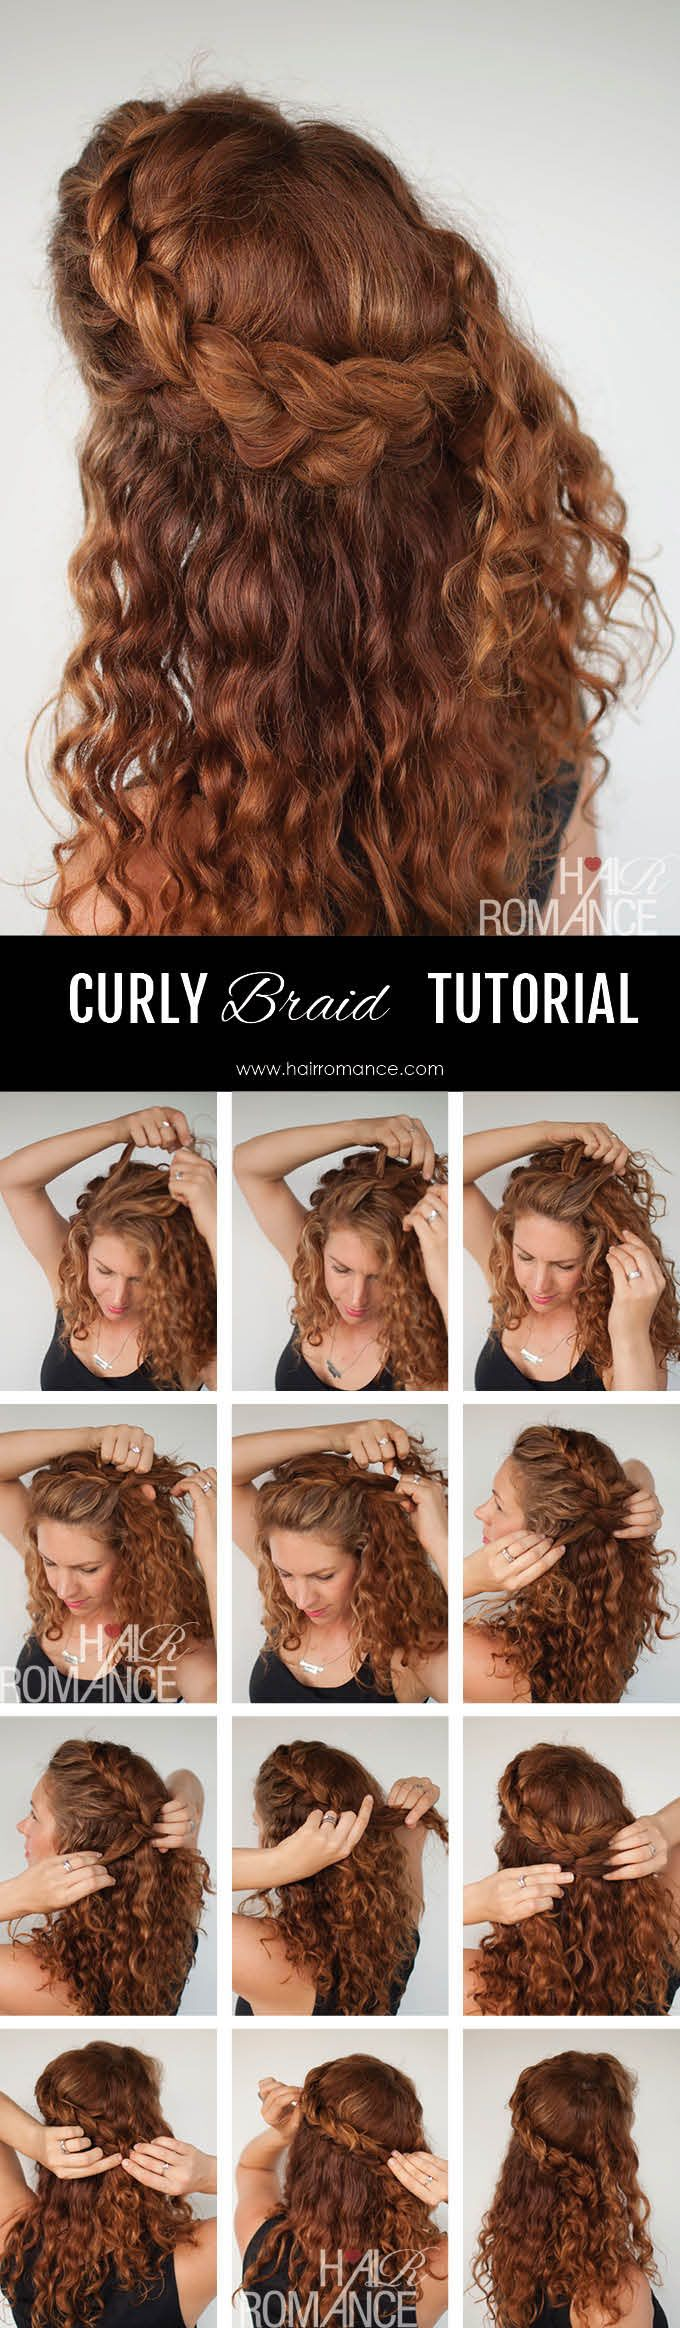 Tremendous 1000 Ideas About Curly Hair Braids On Pinterest Hairstyles Hairstyle Inspiration Daily Dogsangcom